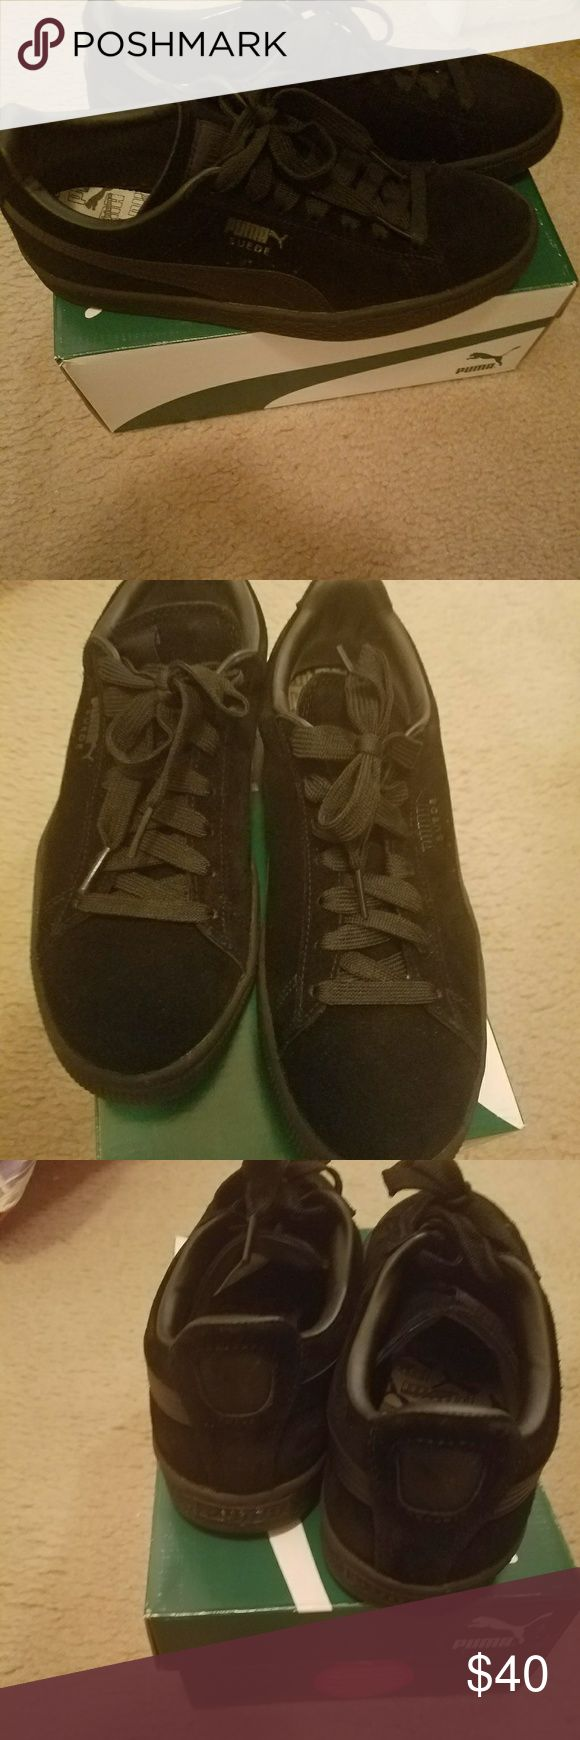 Sneakers Black sueude pumas size 6.5 boys equal to 8.5 ladies  Worn 3 times...excellent condition. Puma Shoes Sneakers